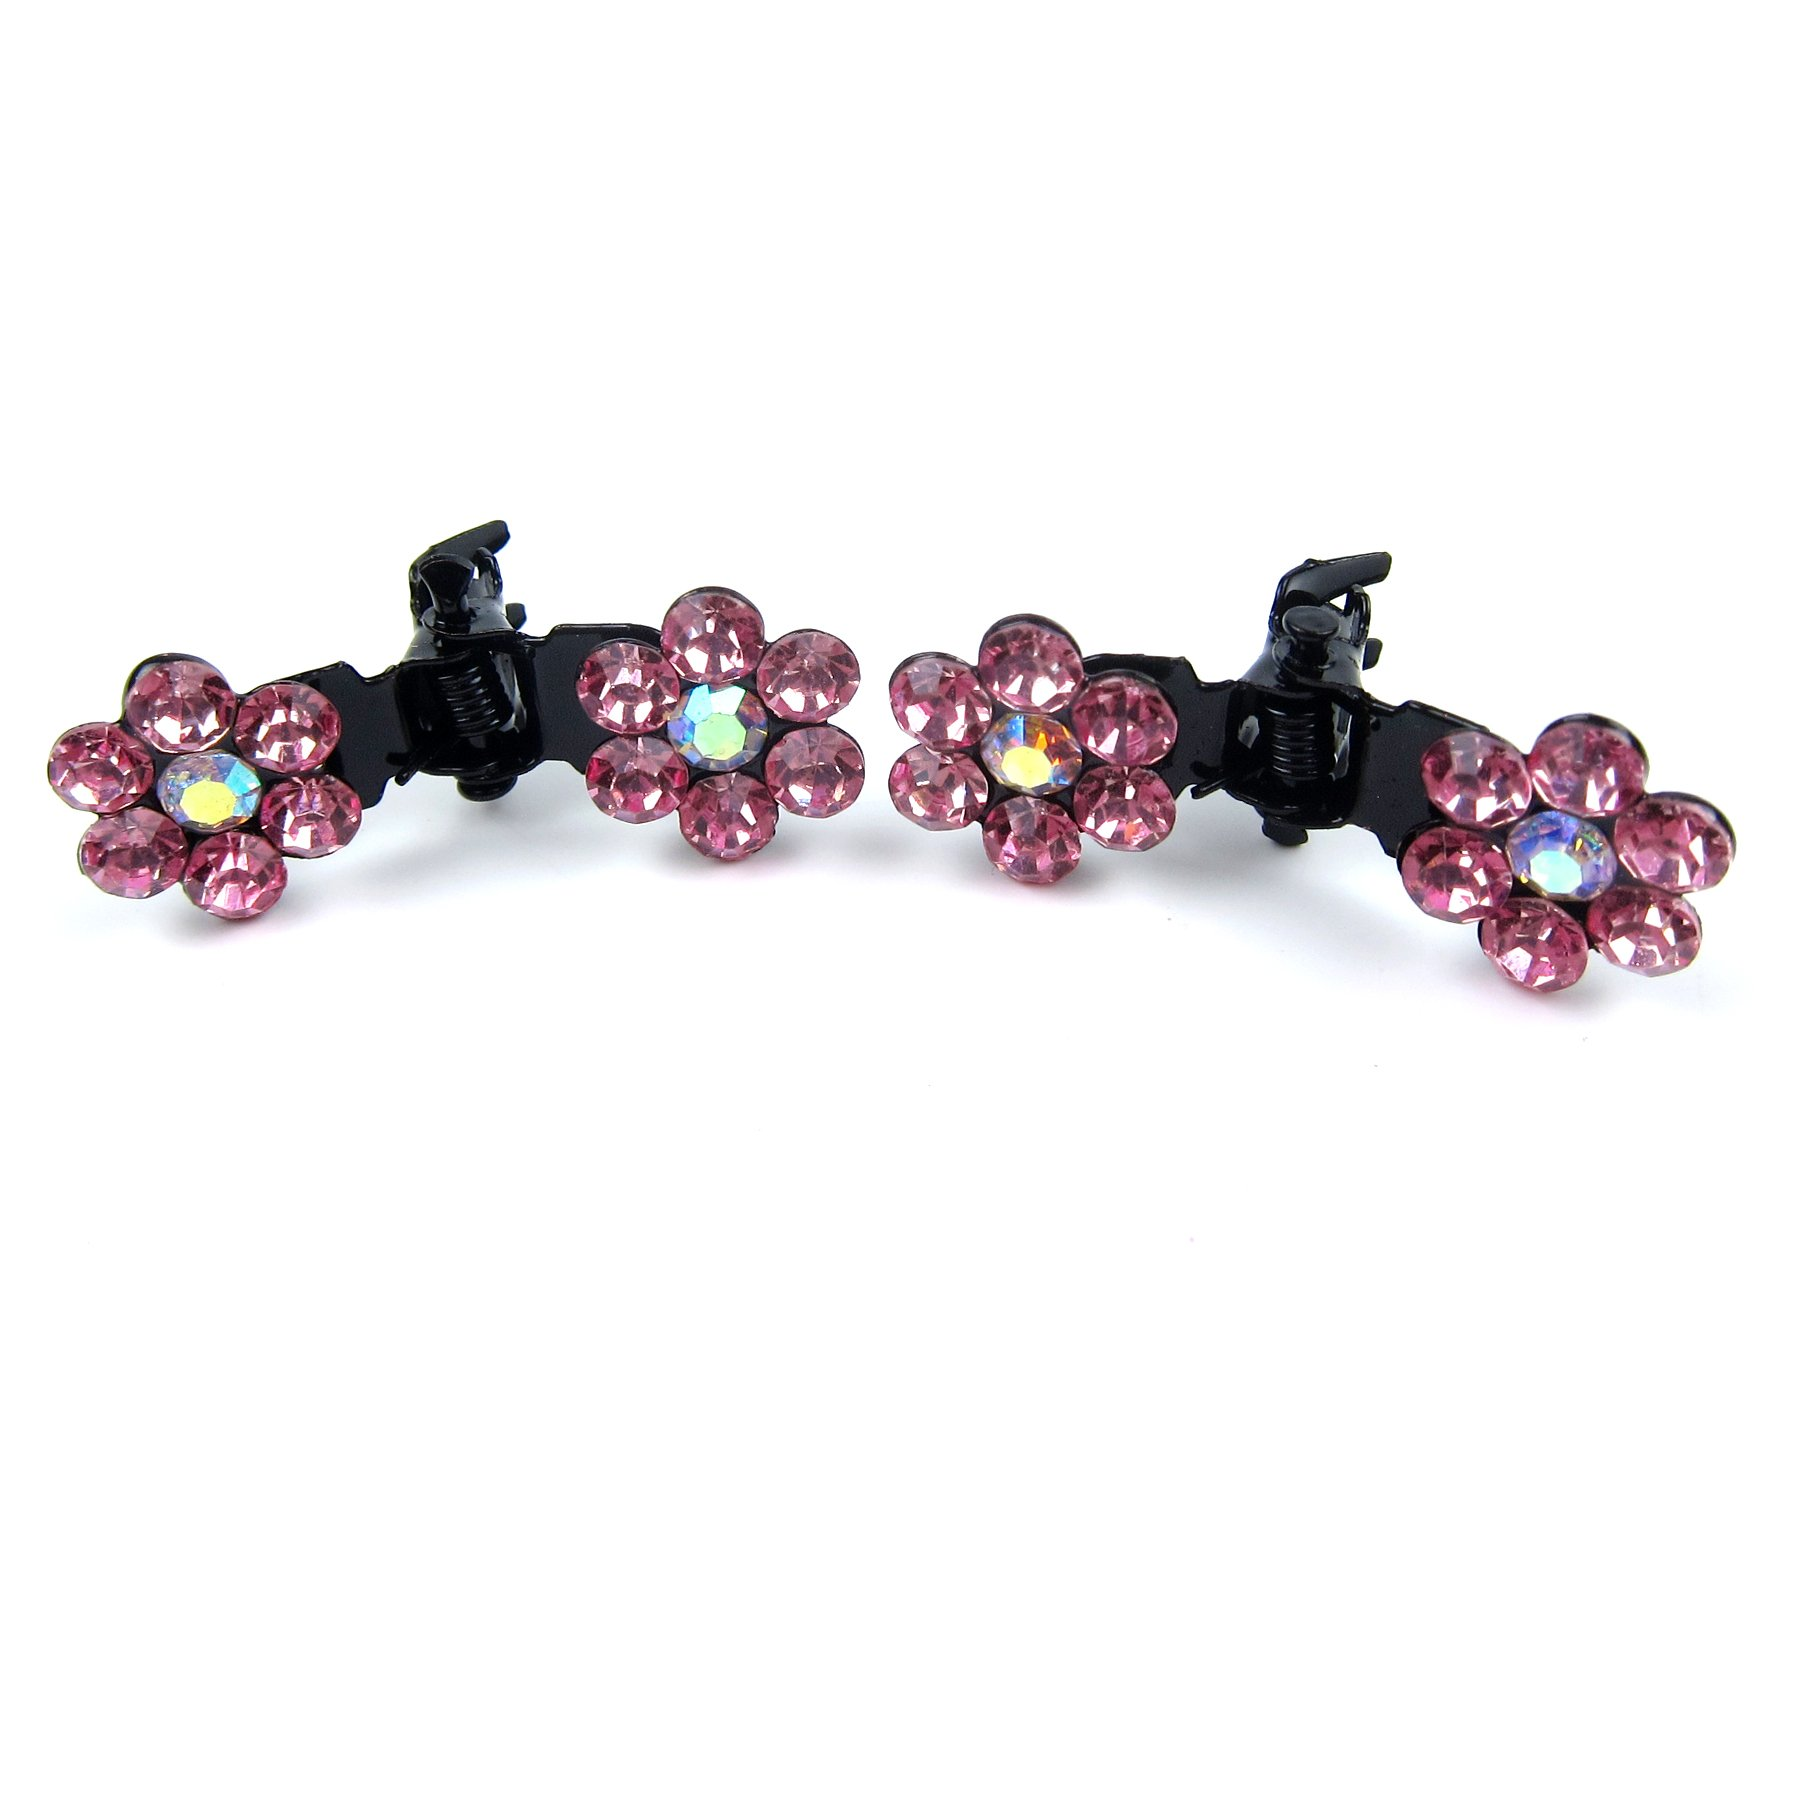 Alfie Pet by Petoga Couture - Dasie Rhinestone Flower Hair Clip 20-Piece Set for Dogs, Cats and Small Animals by Alfie (Image #4)